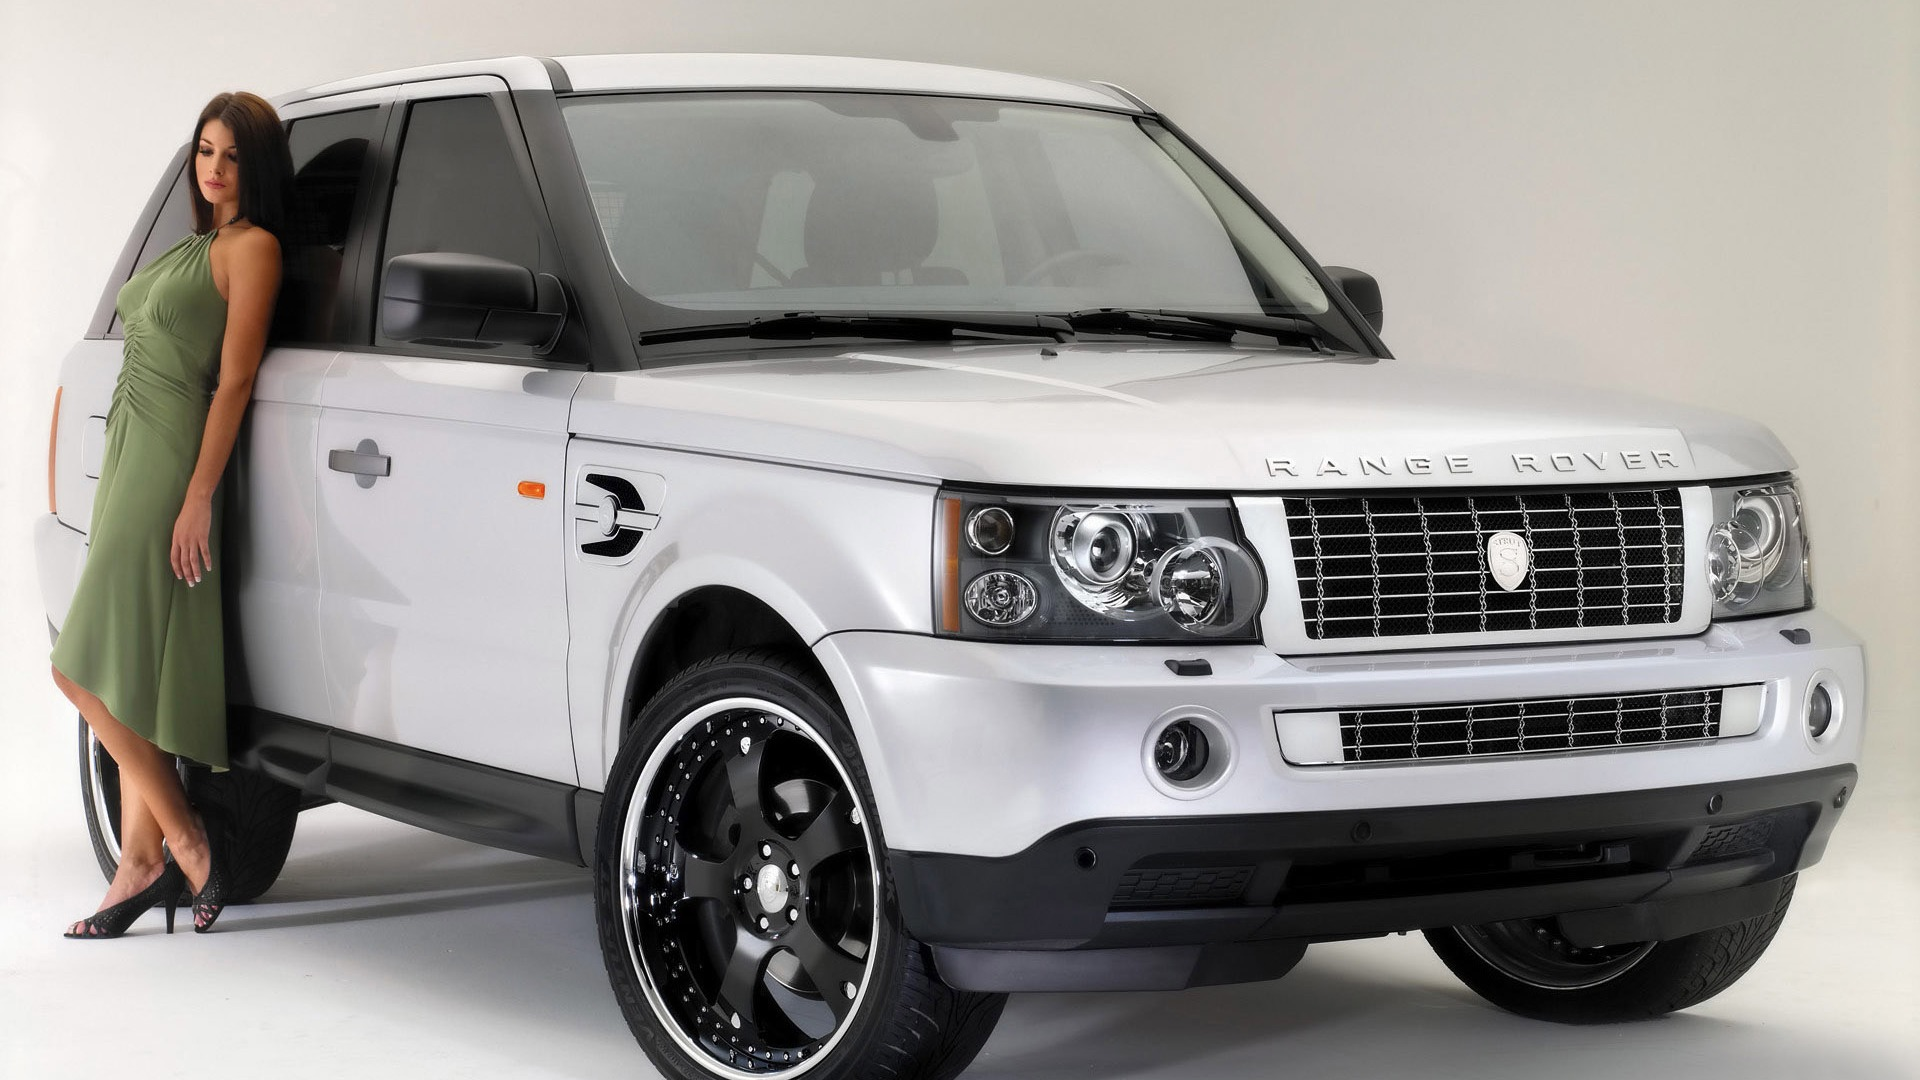 Sport Wallpaper Land Rovers: Land Rover Wallpapers, Pictures, Images